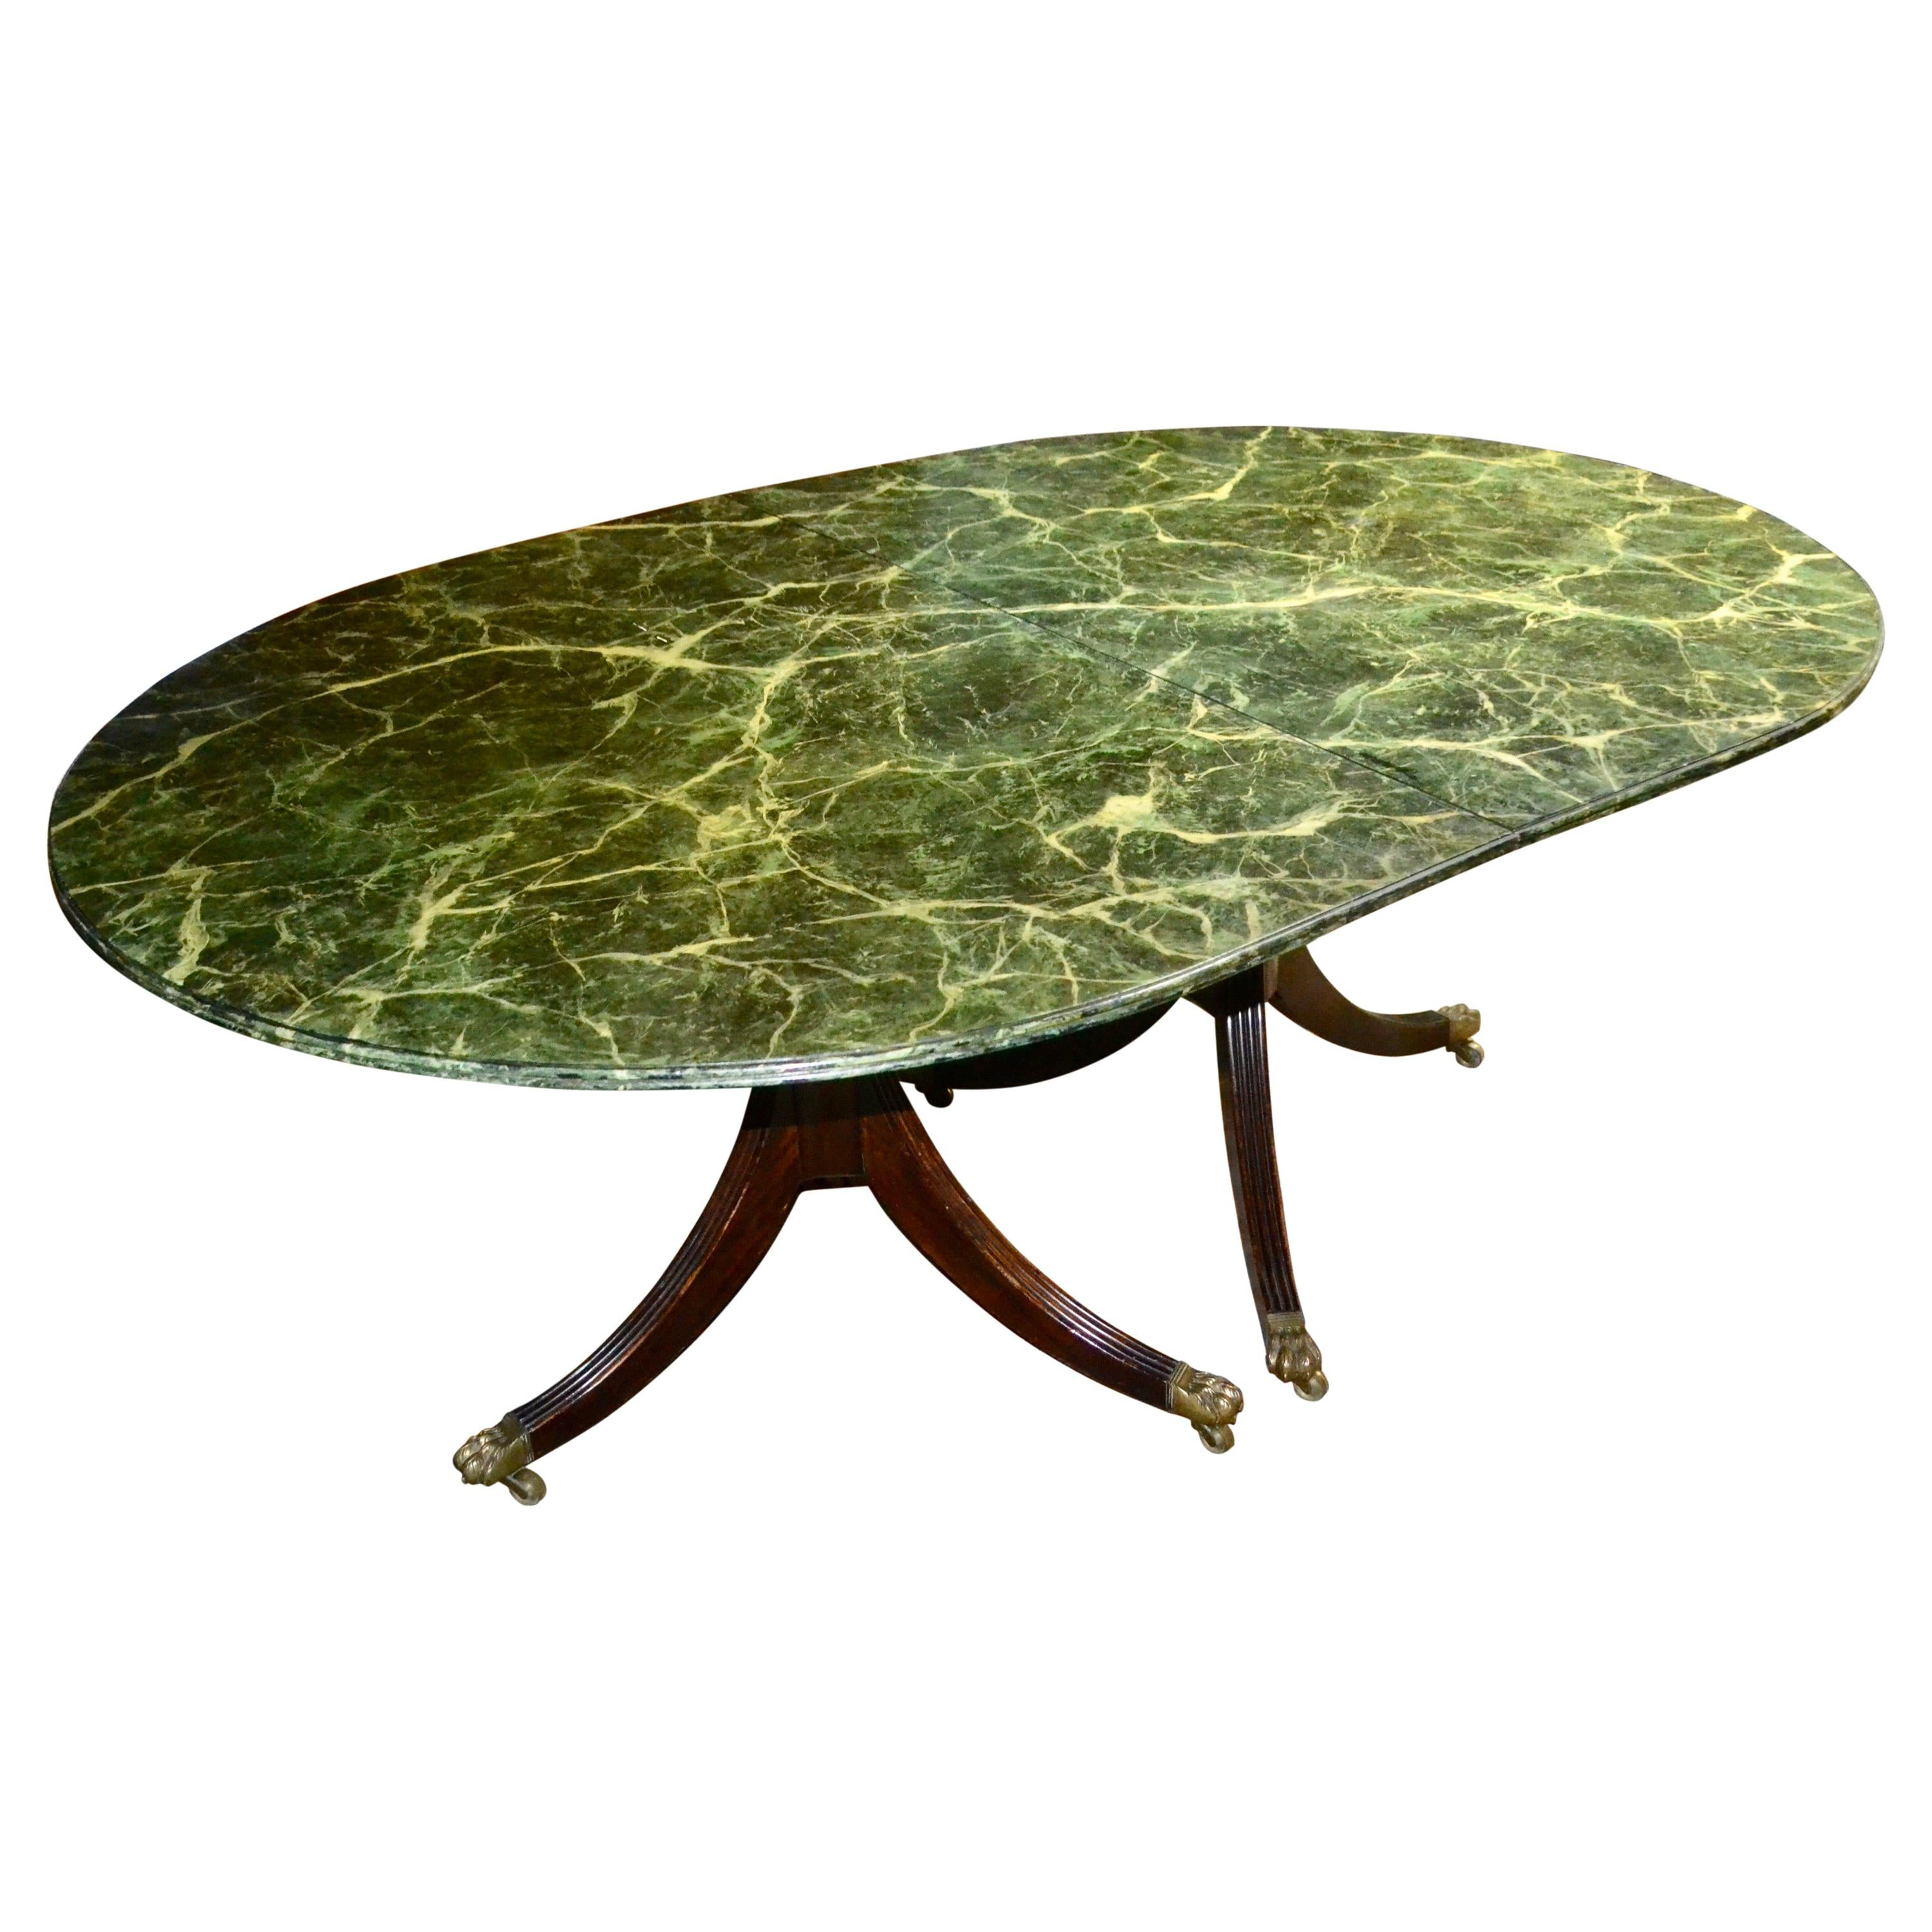 Sheraton Style Dining Table with Faux Marble Top